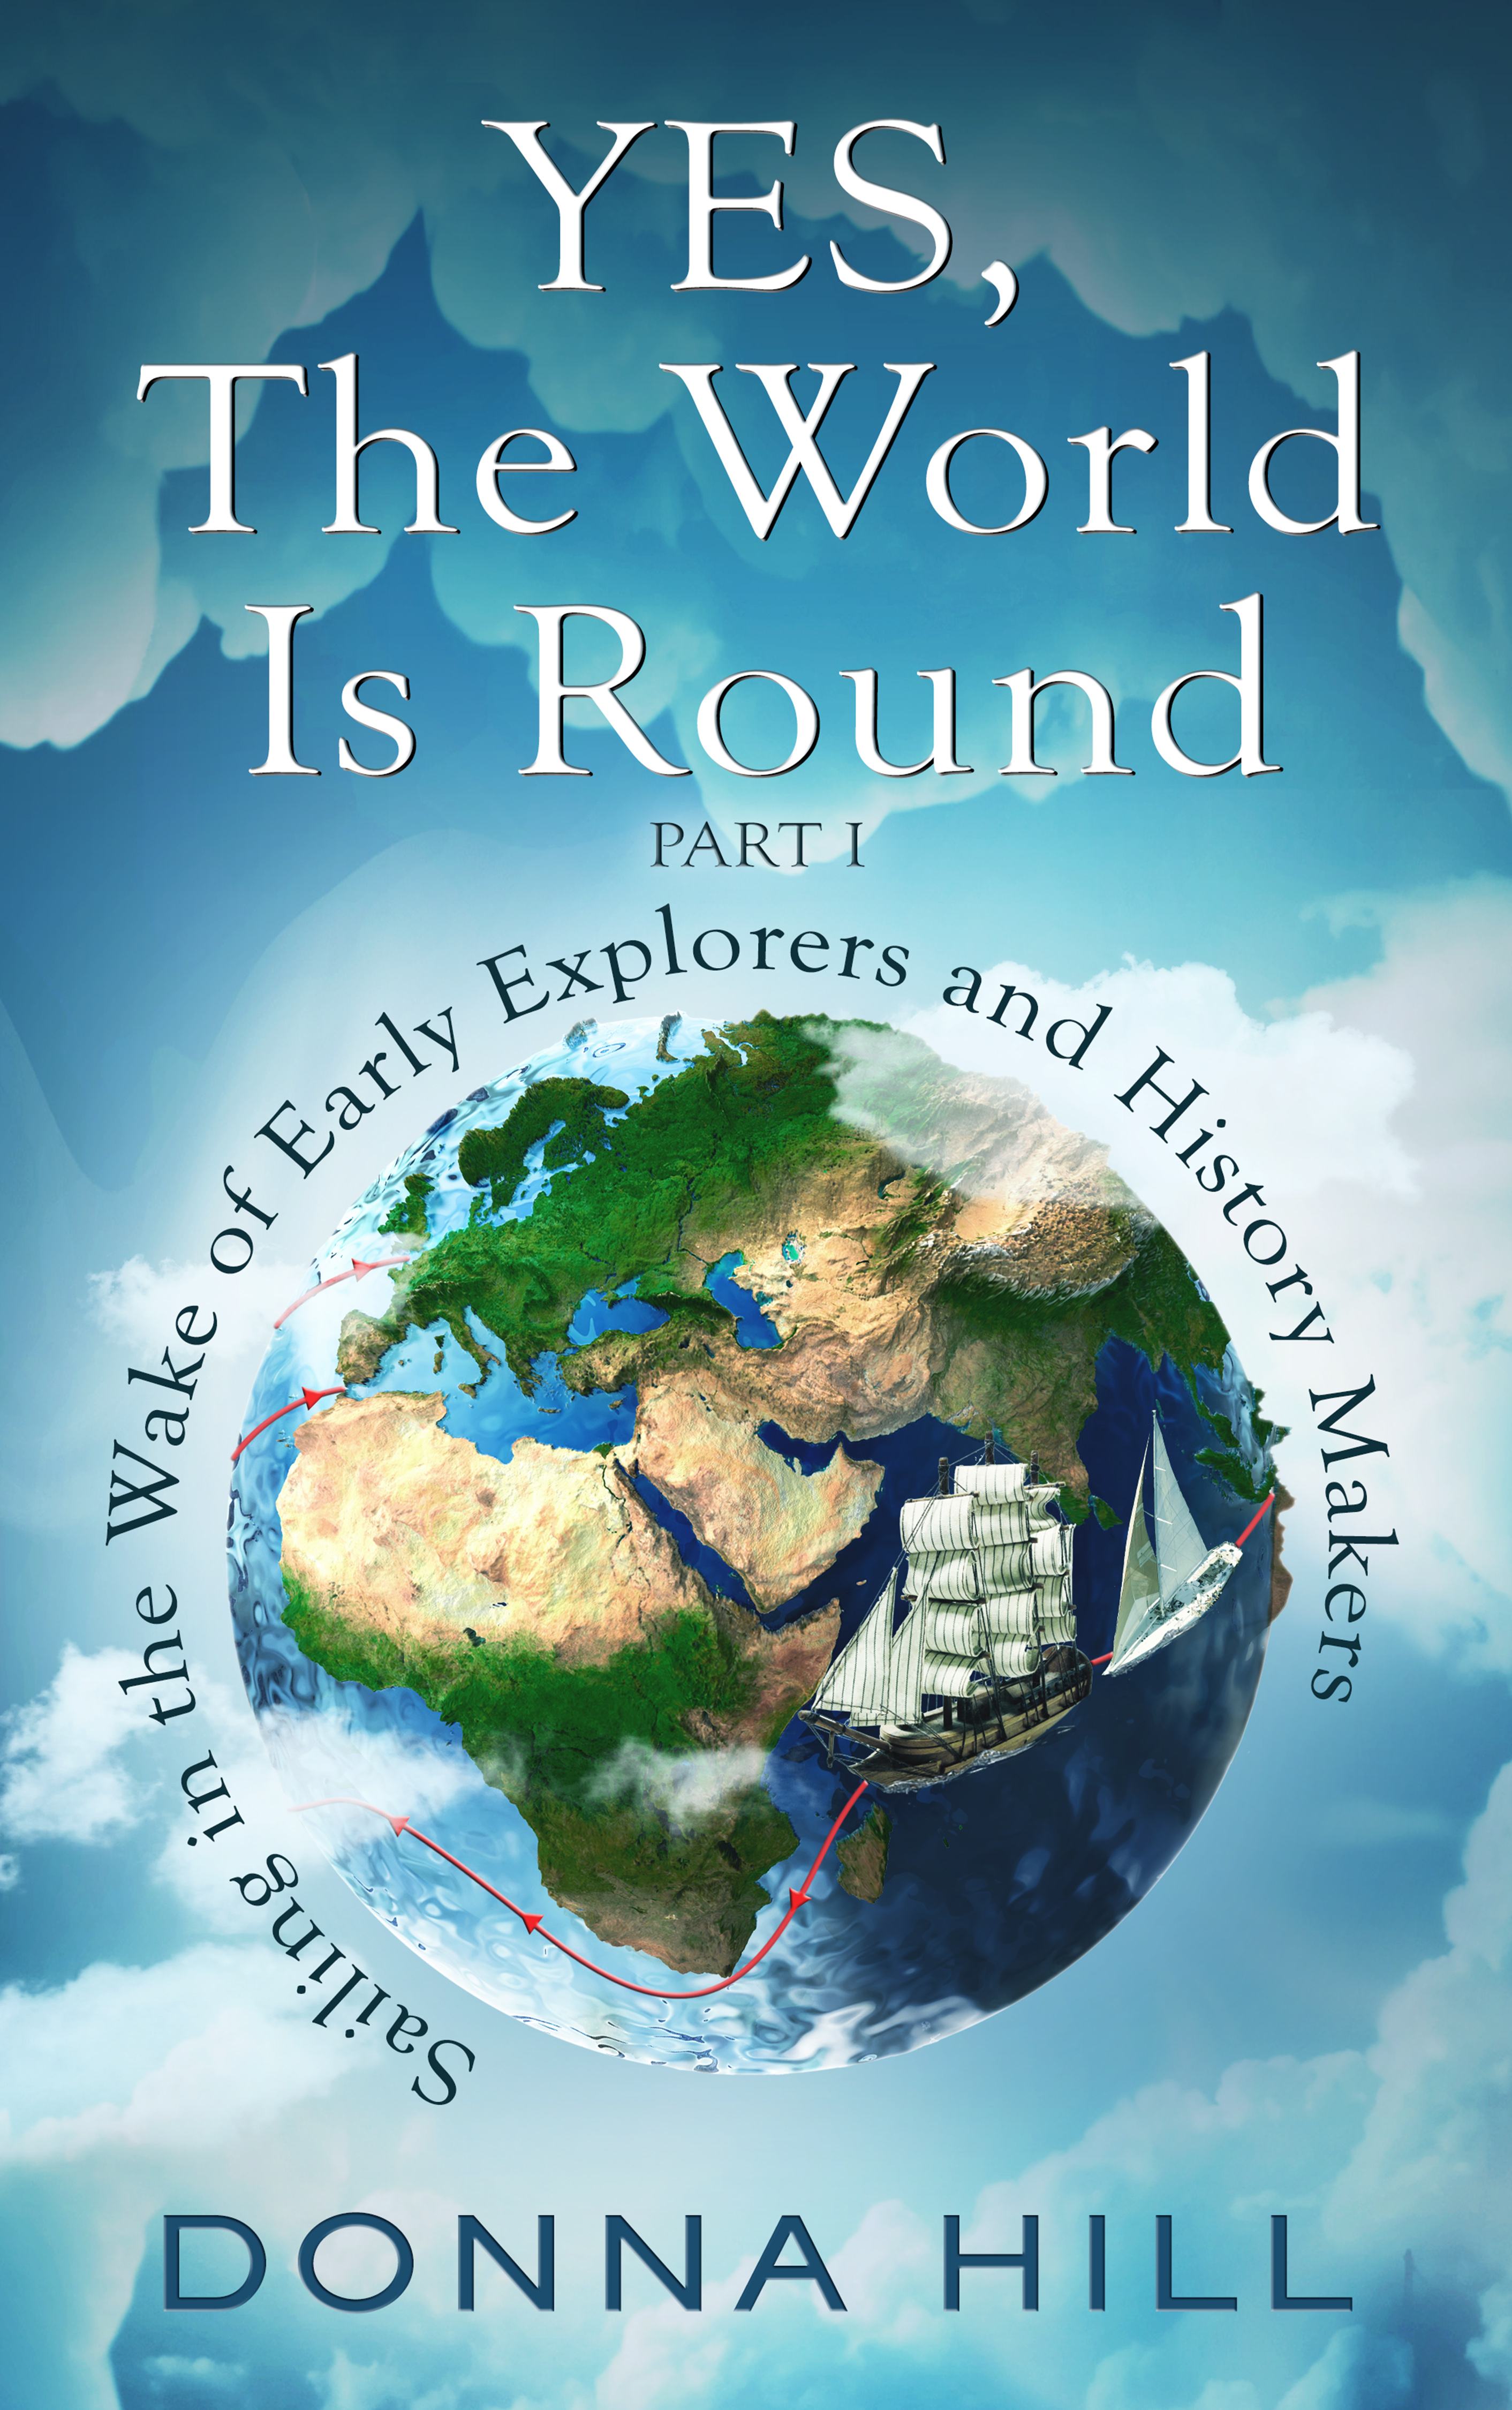 YES, THE WORLD IS ROUND, PART I